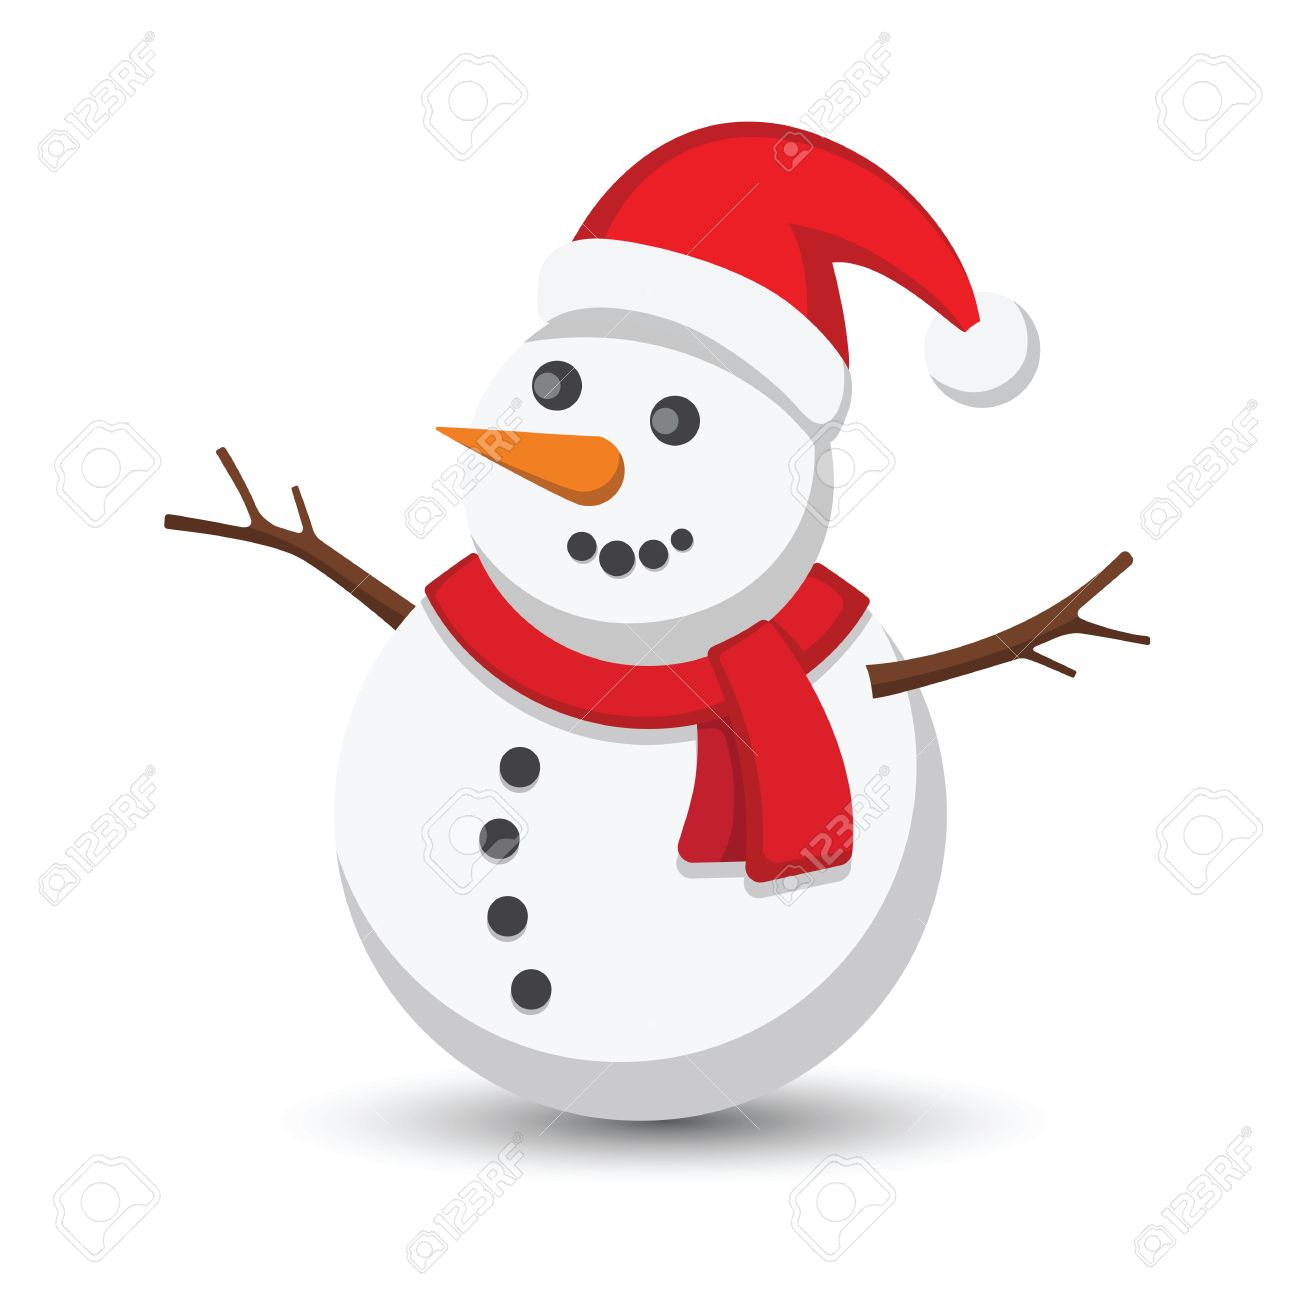 1300x1300 Snowman Vector Illustration On White Background Royalty Free